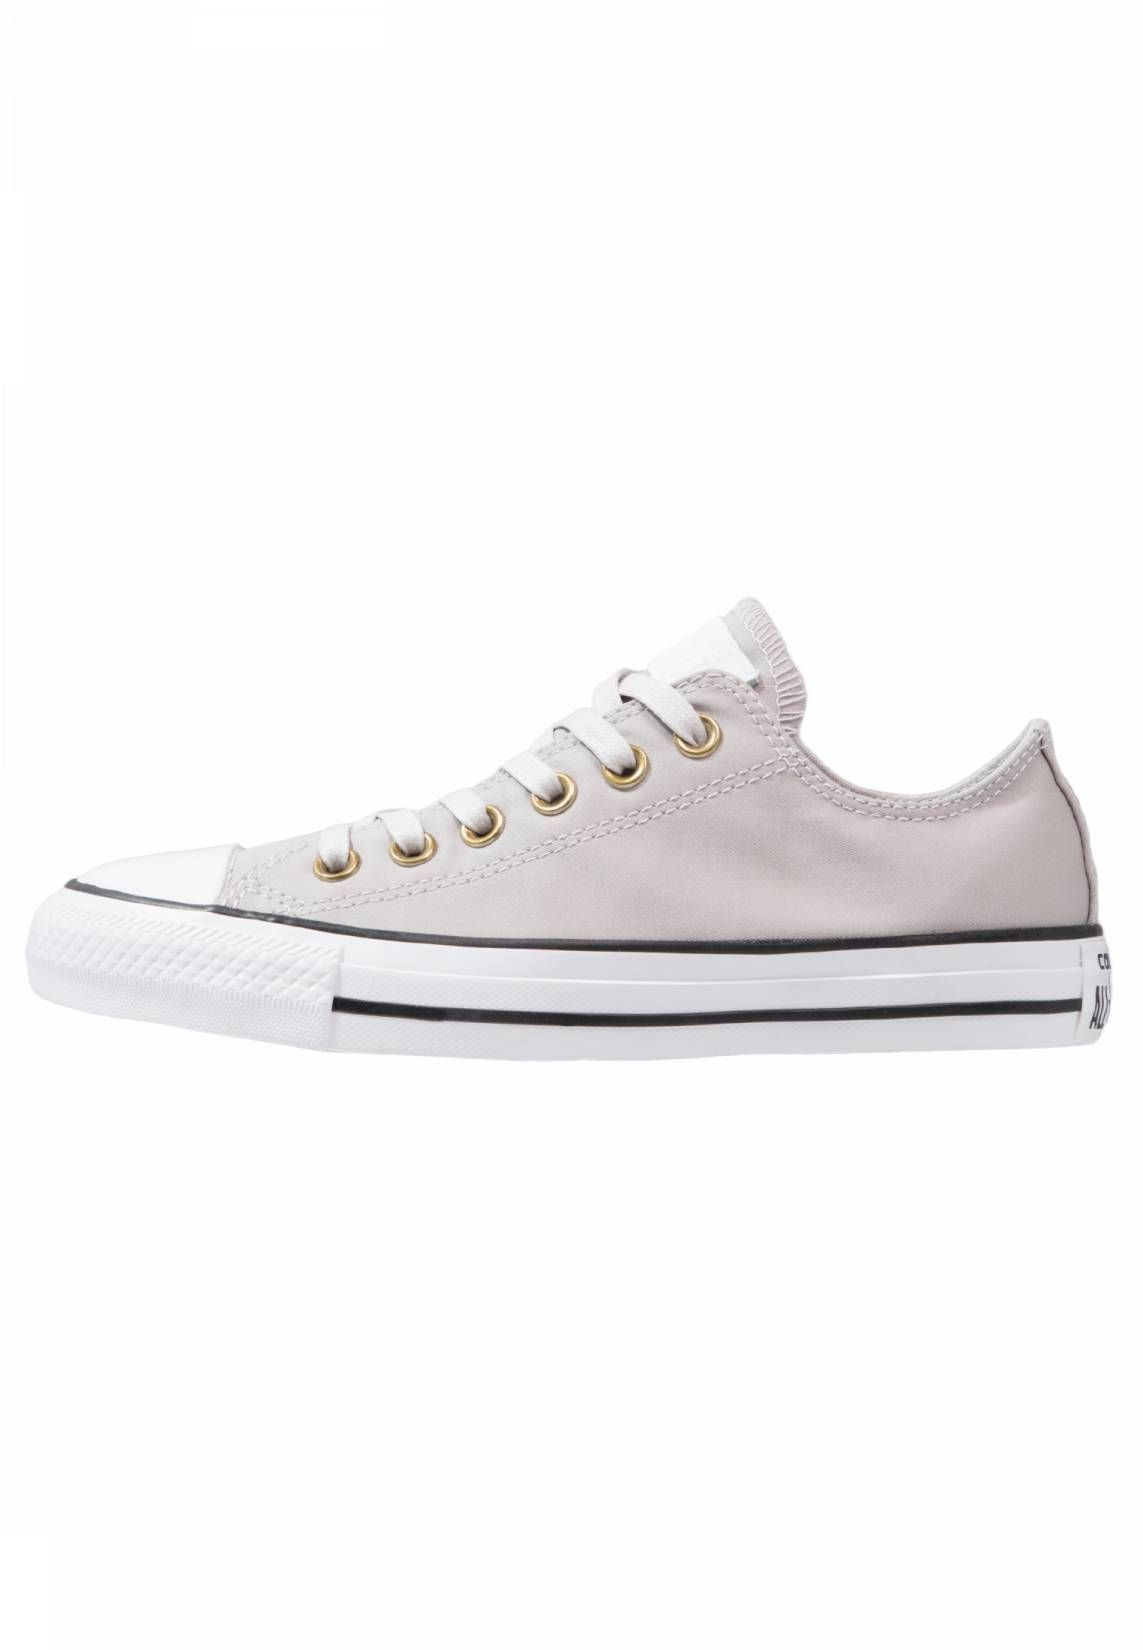 6e8d5571ad0b Converse. CHUCK TAYLOR ALL STAR OX - Sneaker low - mouse white black.  Sohle Kunststoff. Decksohle Textil. Innenmaterial Textil.